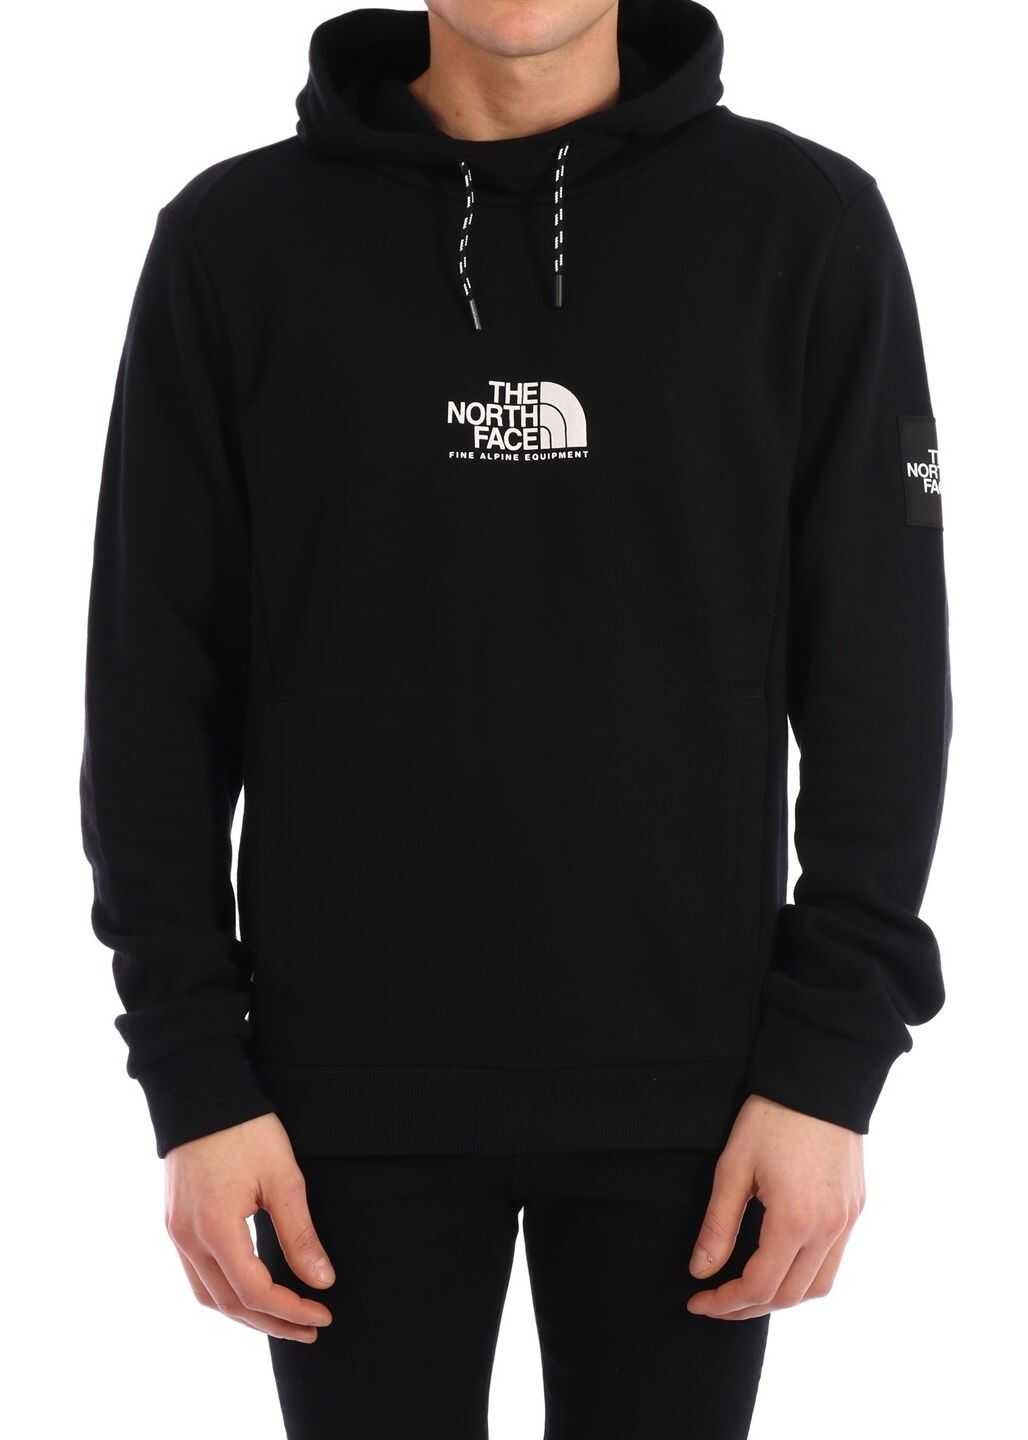 The North Face Sweatshirt Logo Black